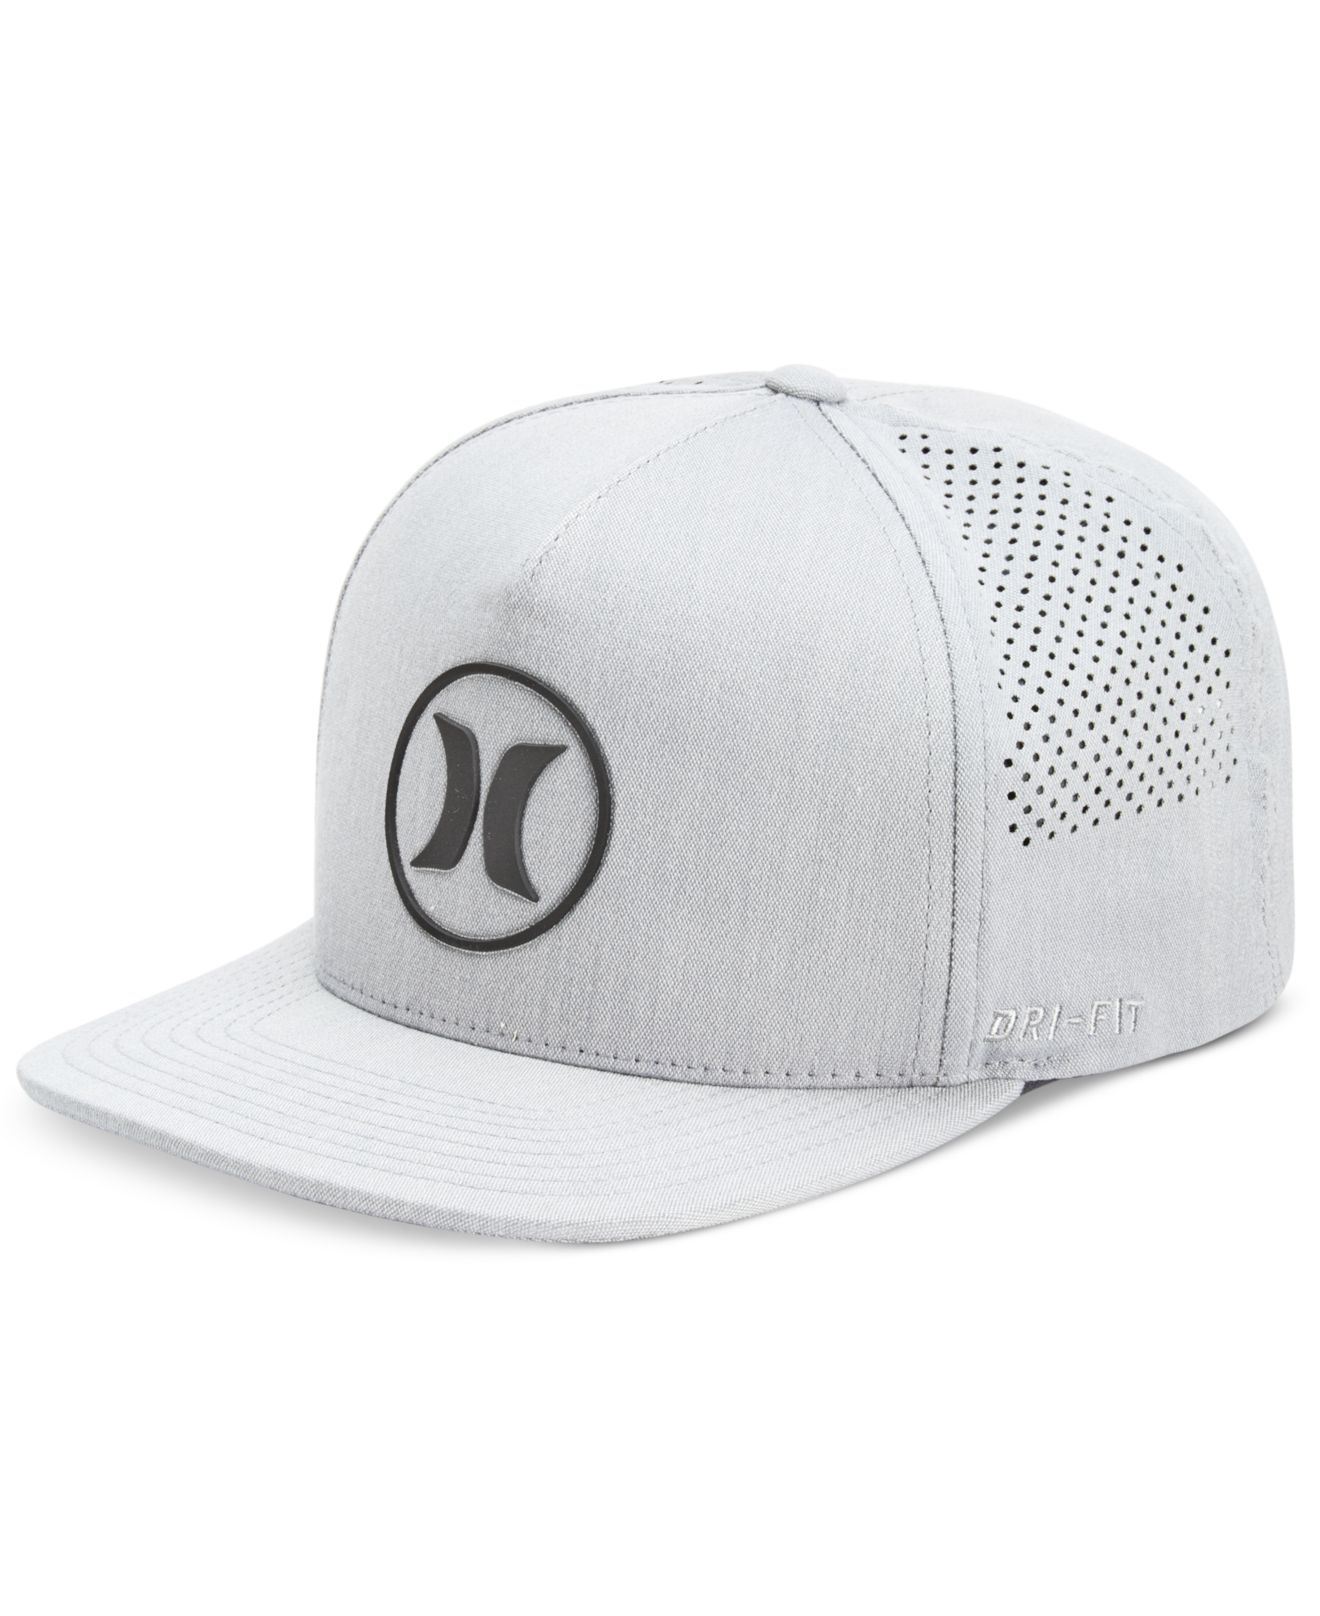 Lyst - Hurley Men s Dri-fit Icon 2.0 Perforated Logo Hat in Gray for Men a1ce4ff208f